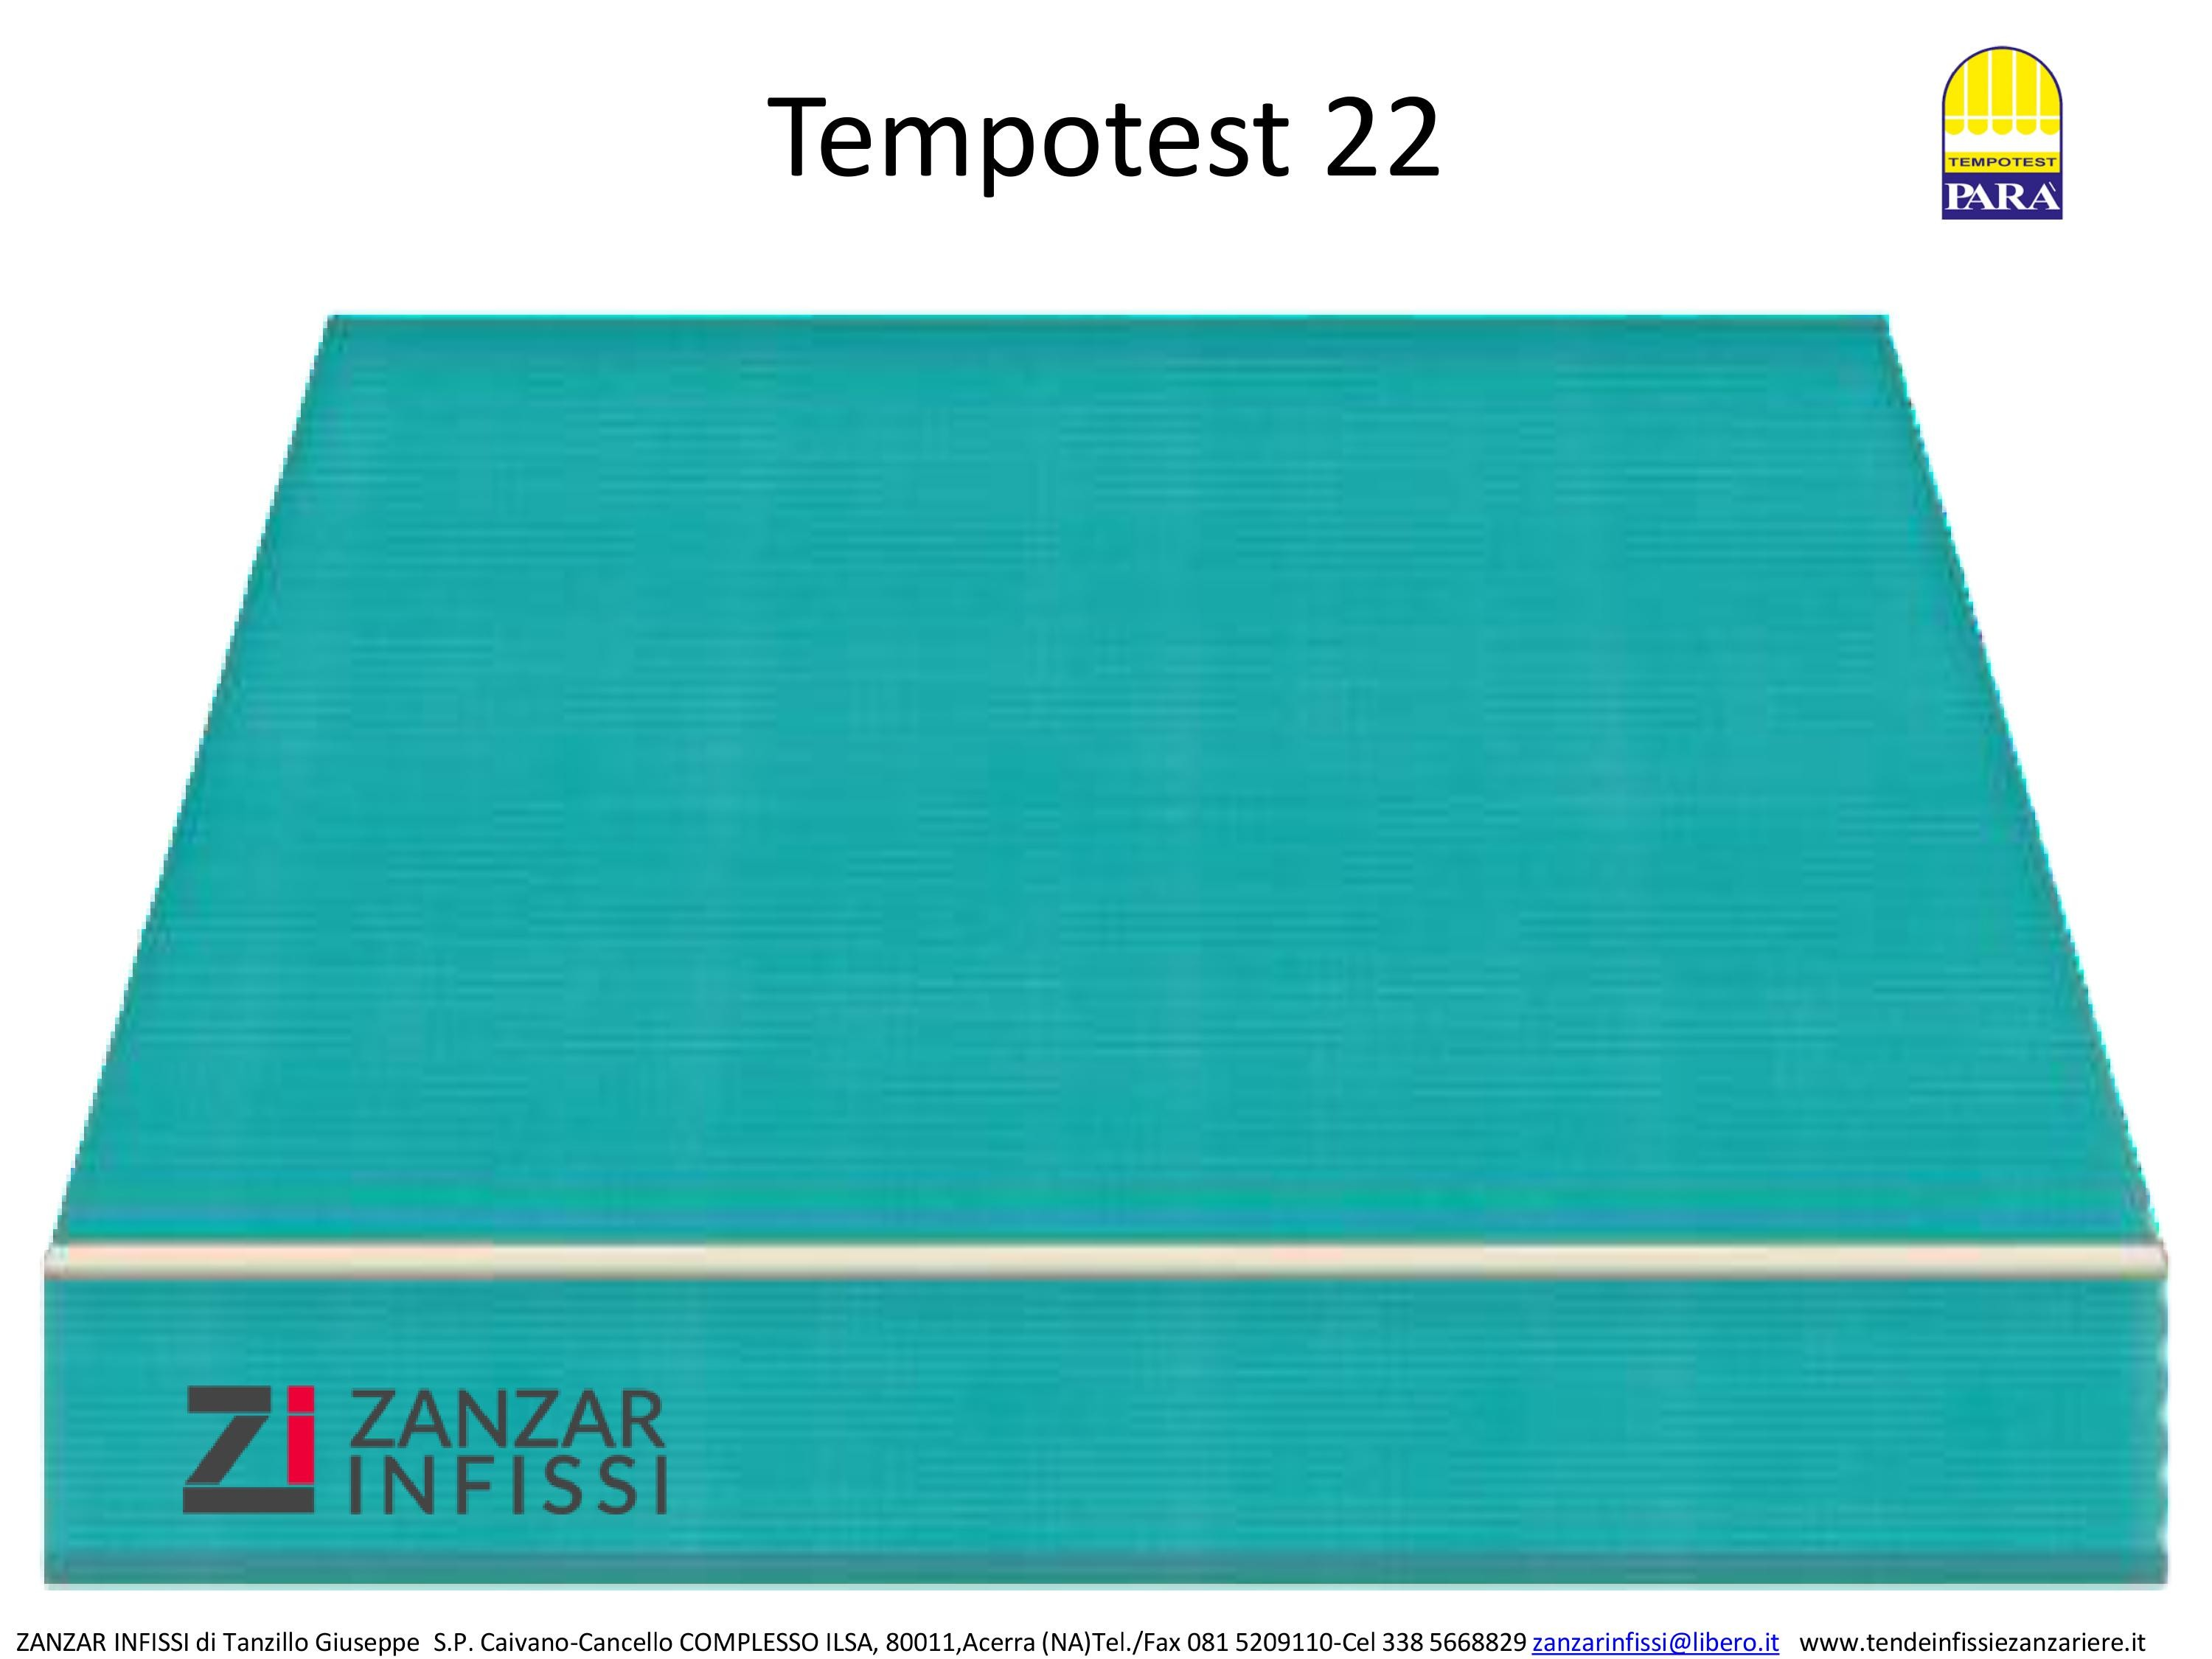 Tempotest 22